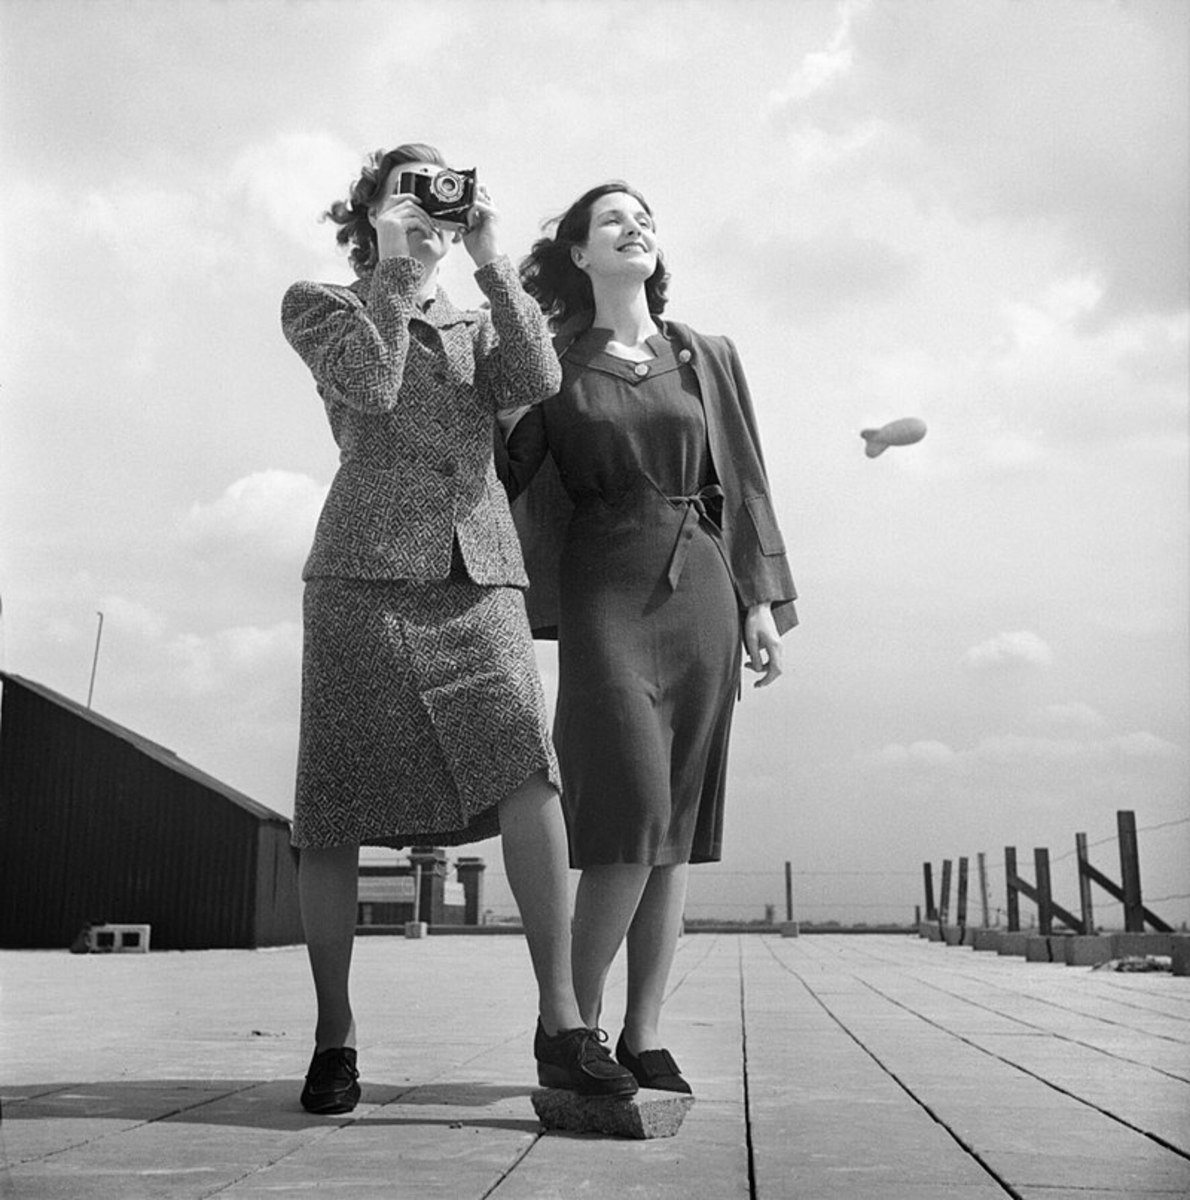 Fashion History: Women's Clothing in the 1940s